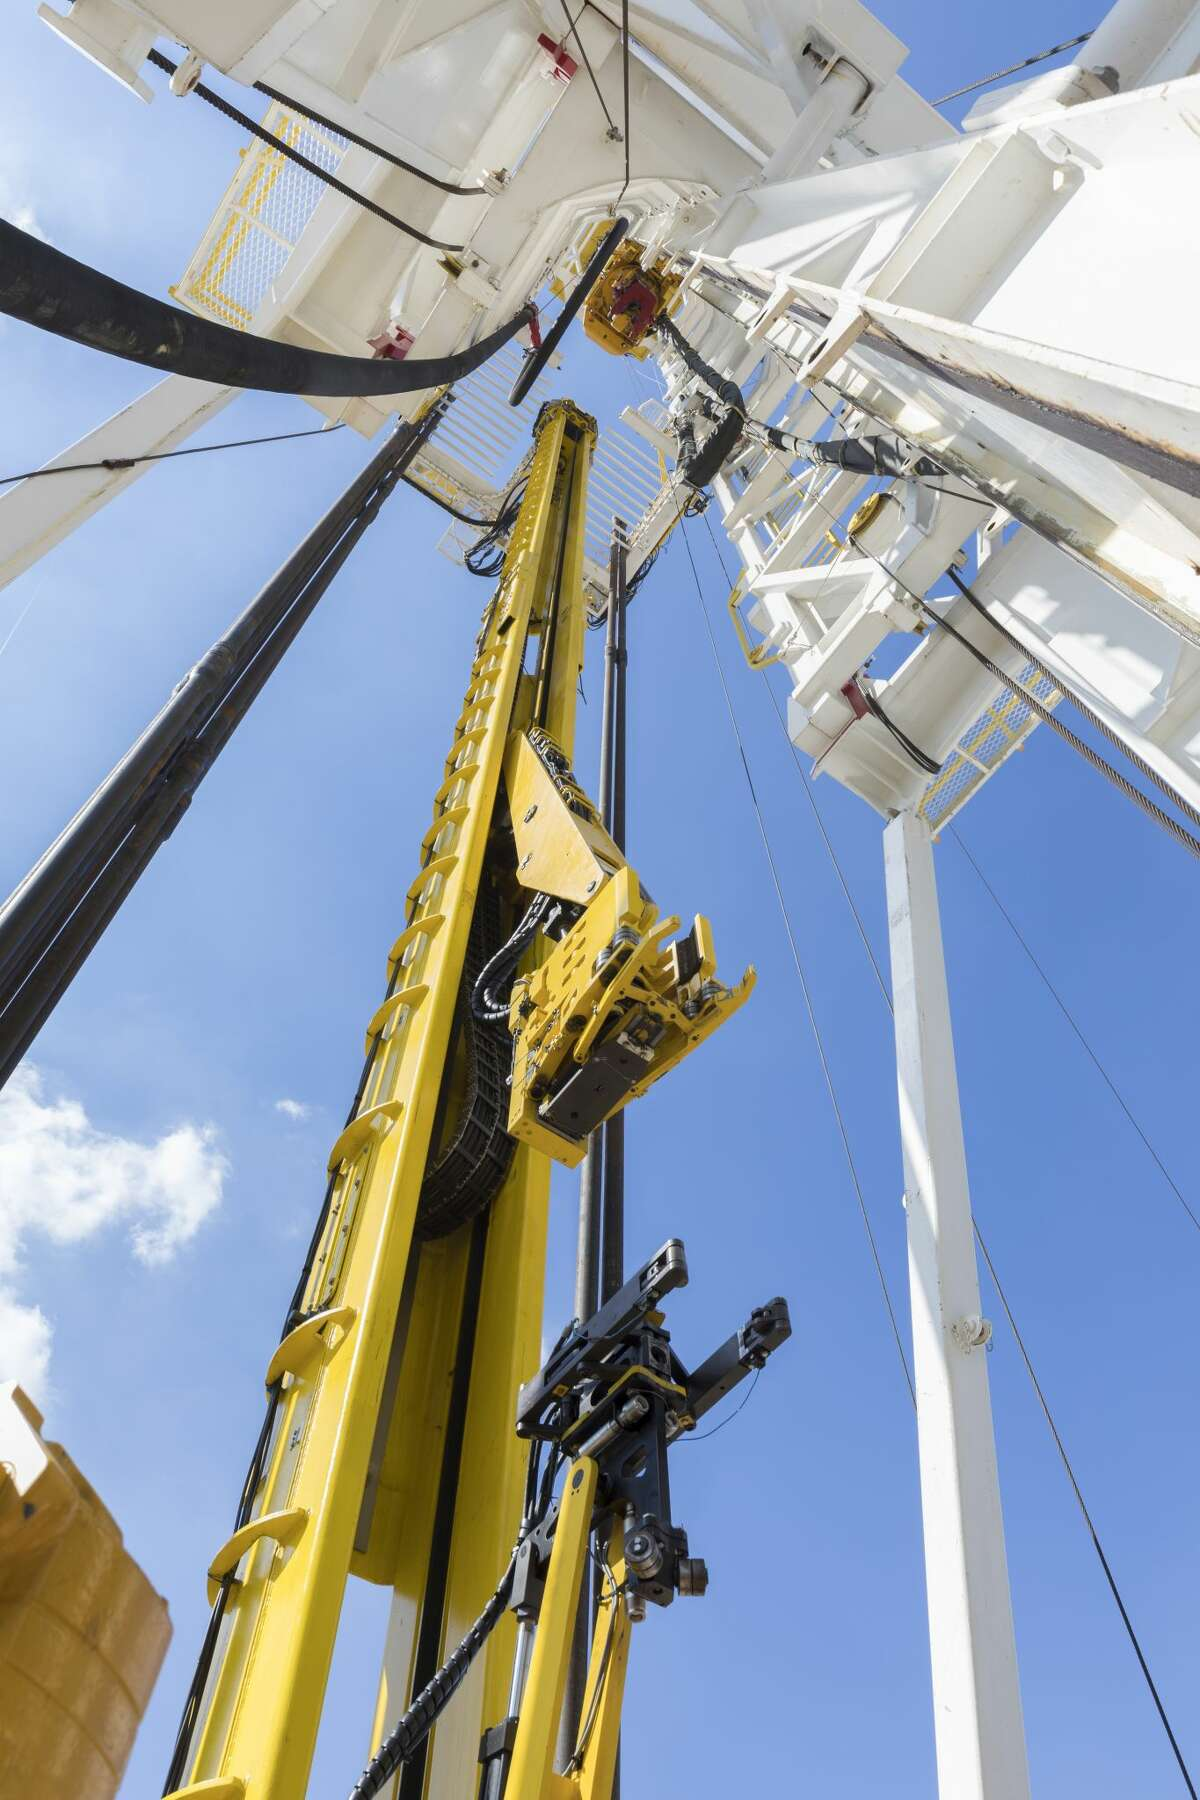 'Big data', 'deep learning' and artificial intelligence are in the process of transforming upstream operations. Oil field equipment such as Baker Hughes' new TerrAdapt smart bit can sense rock types and act to protect the bit's cutters, and Nabors' iRacker drilling system uses robotics to piece together and insert steel pipe underground to build wells.